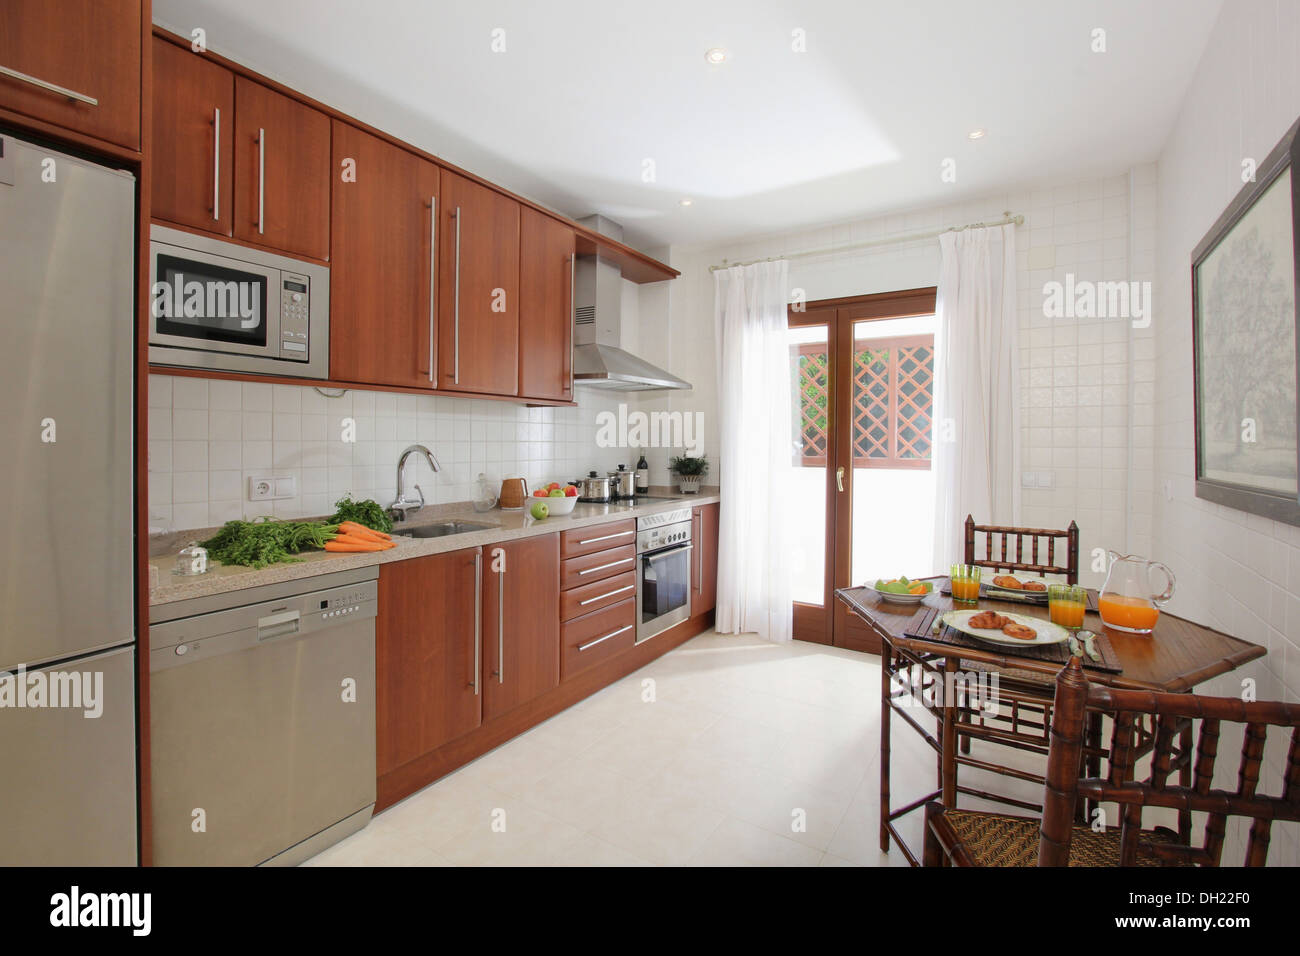 Breakfast On Table In Modern Spanish Kitchen With Stainless Steel - Stainless steel dishwasher table